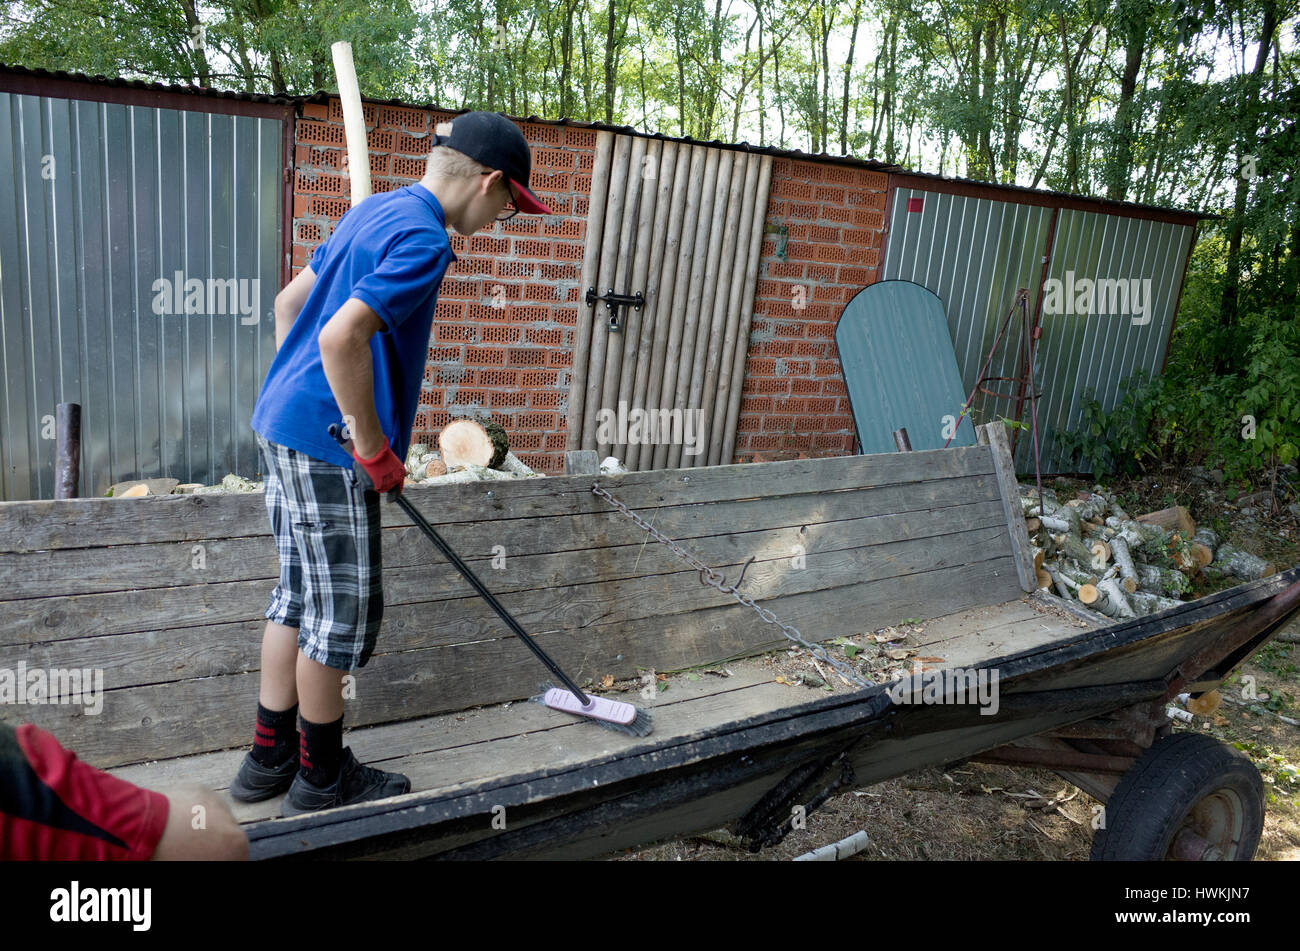 Boy sweeping out wagon that was filled with wood as a family chore or job age 12. Zawady Central Poland Europe - Stock Image